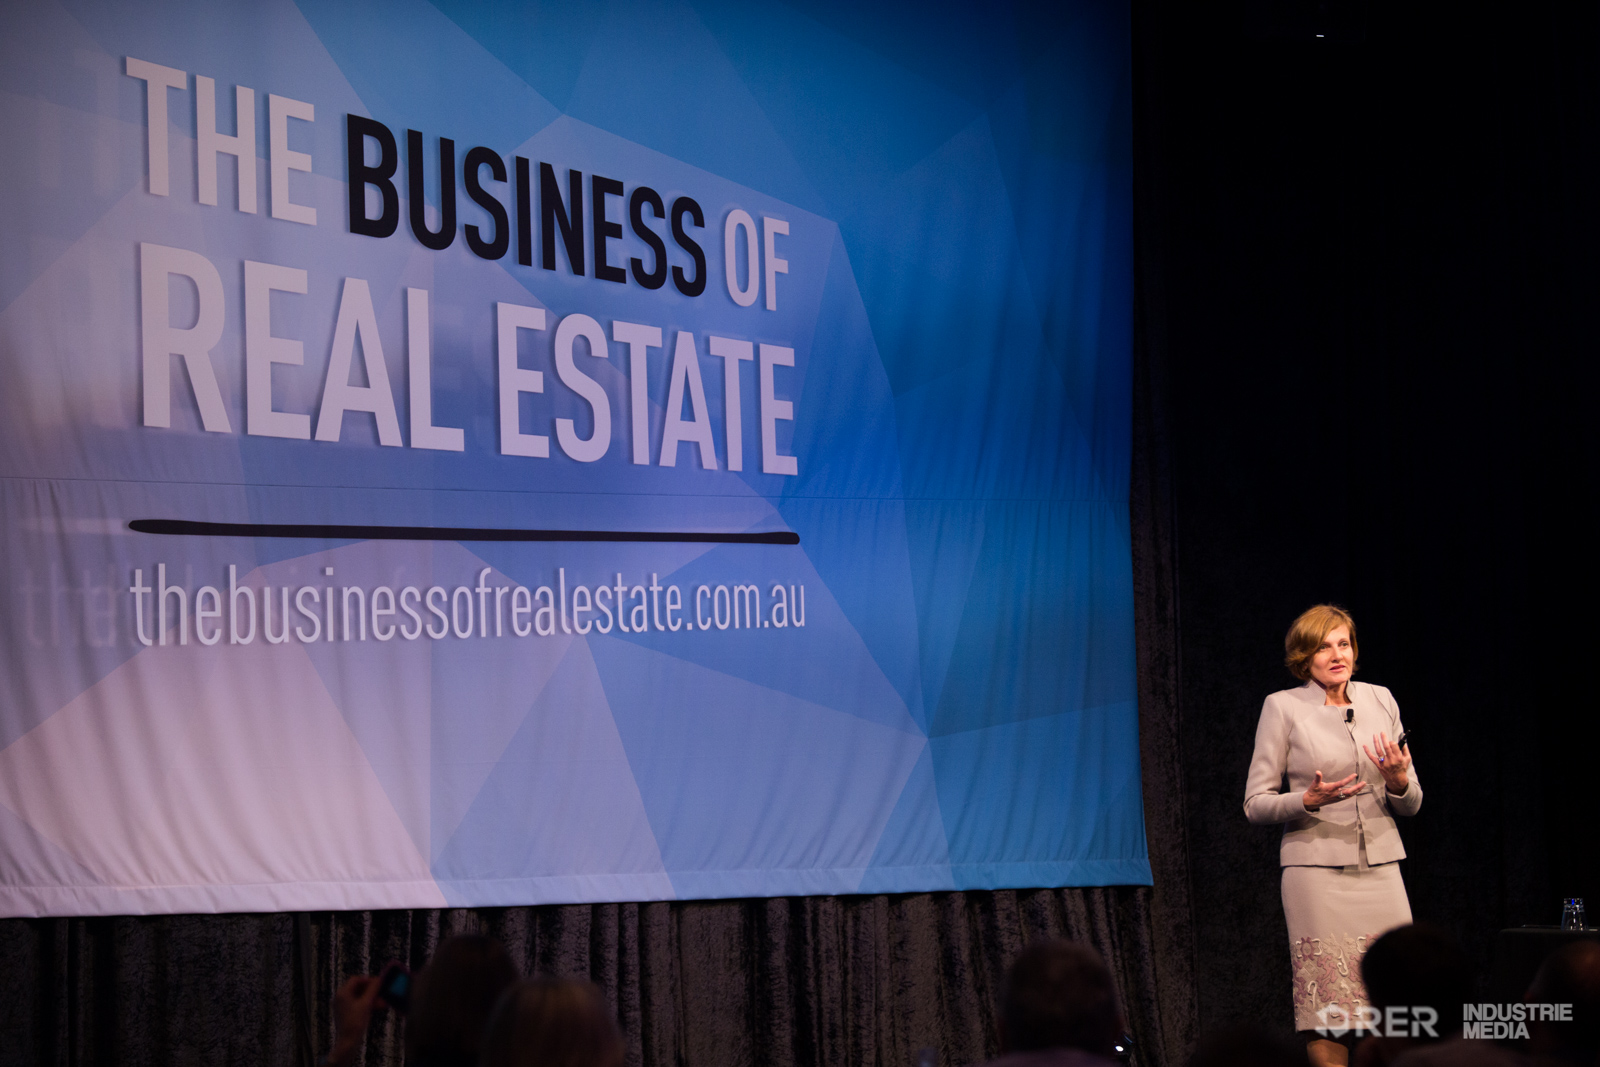 https://www.thebusinessofrealestate.com.au/wp-content/uploads/2016/09/RER_BUSINESS_OF_REAL_ESTATE_DAY_2-22.jpg